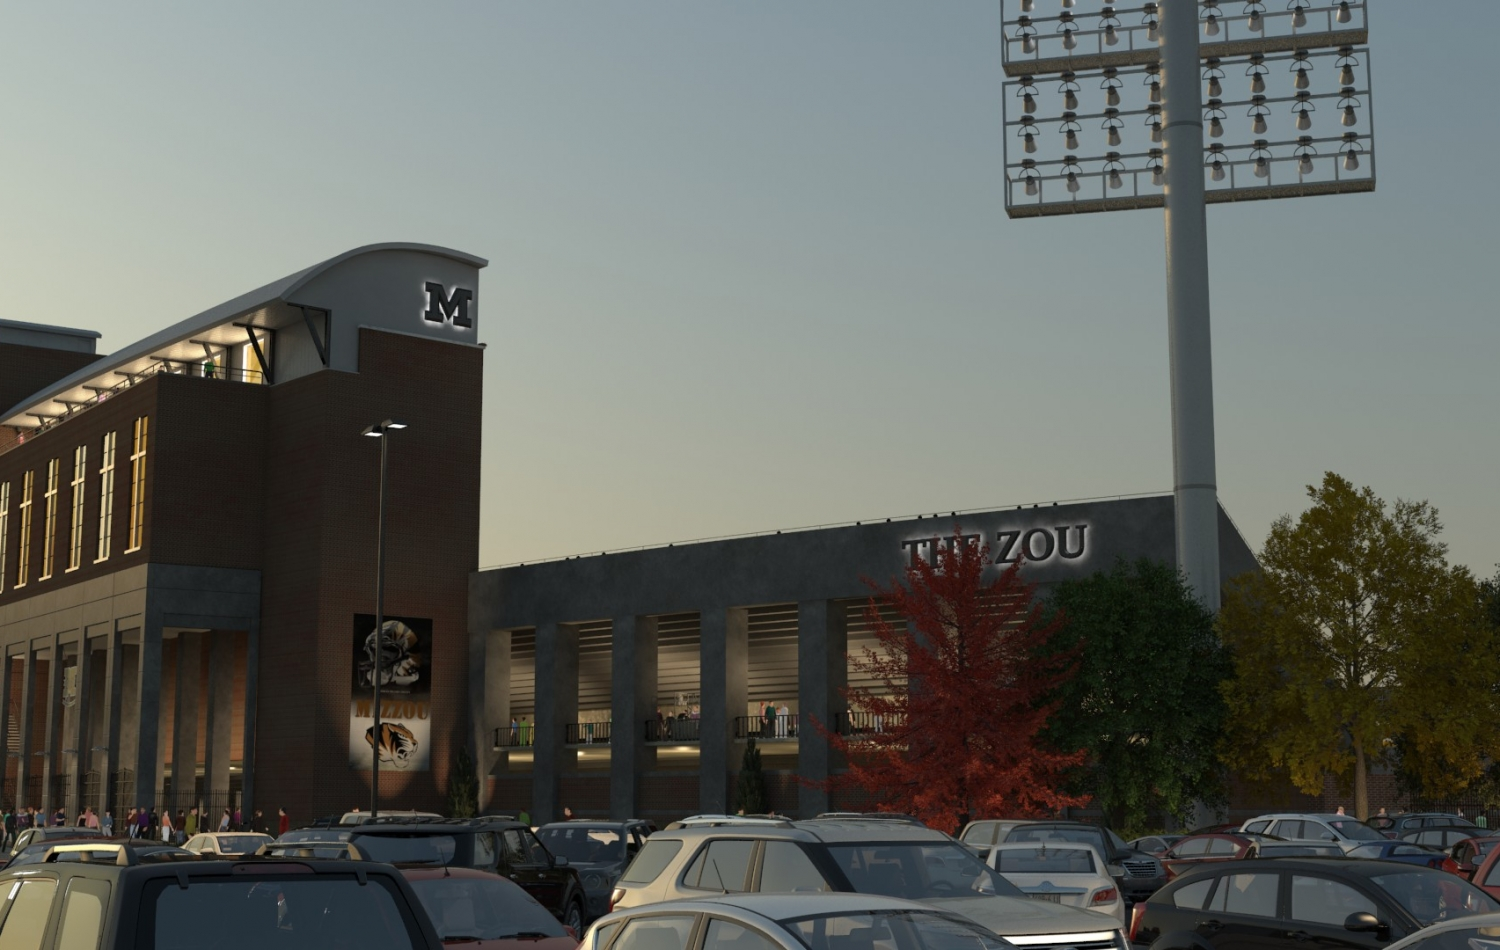 A human eye level sample of Trinity 3D stadium renderings for the Mizzou project.